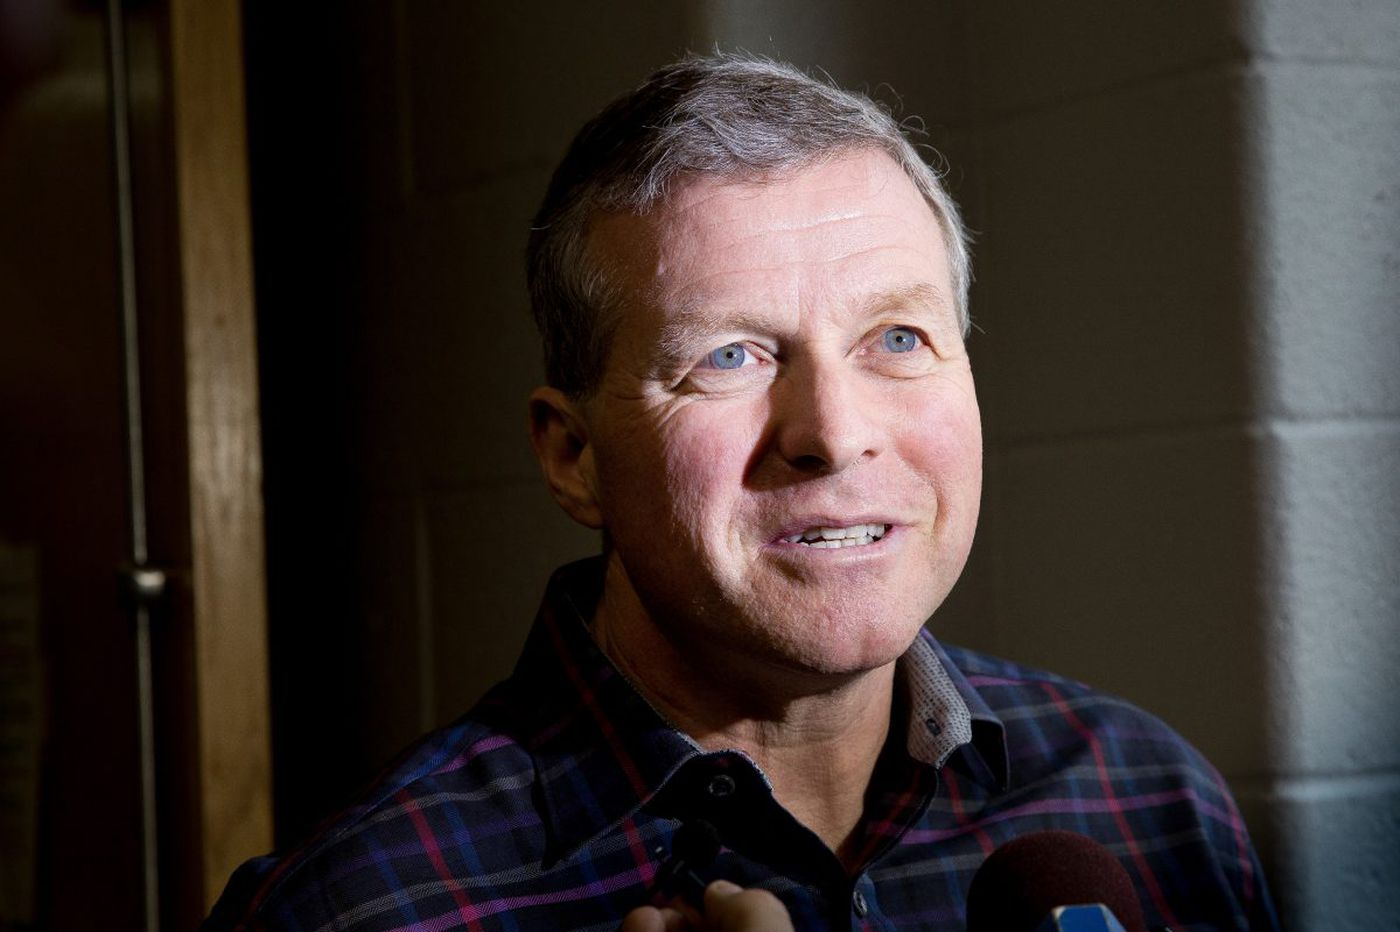 Rep. Charlie Dent, Trump critic and leading voice of centrist GOP, to retire